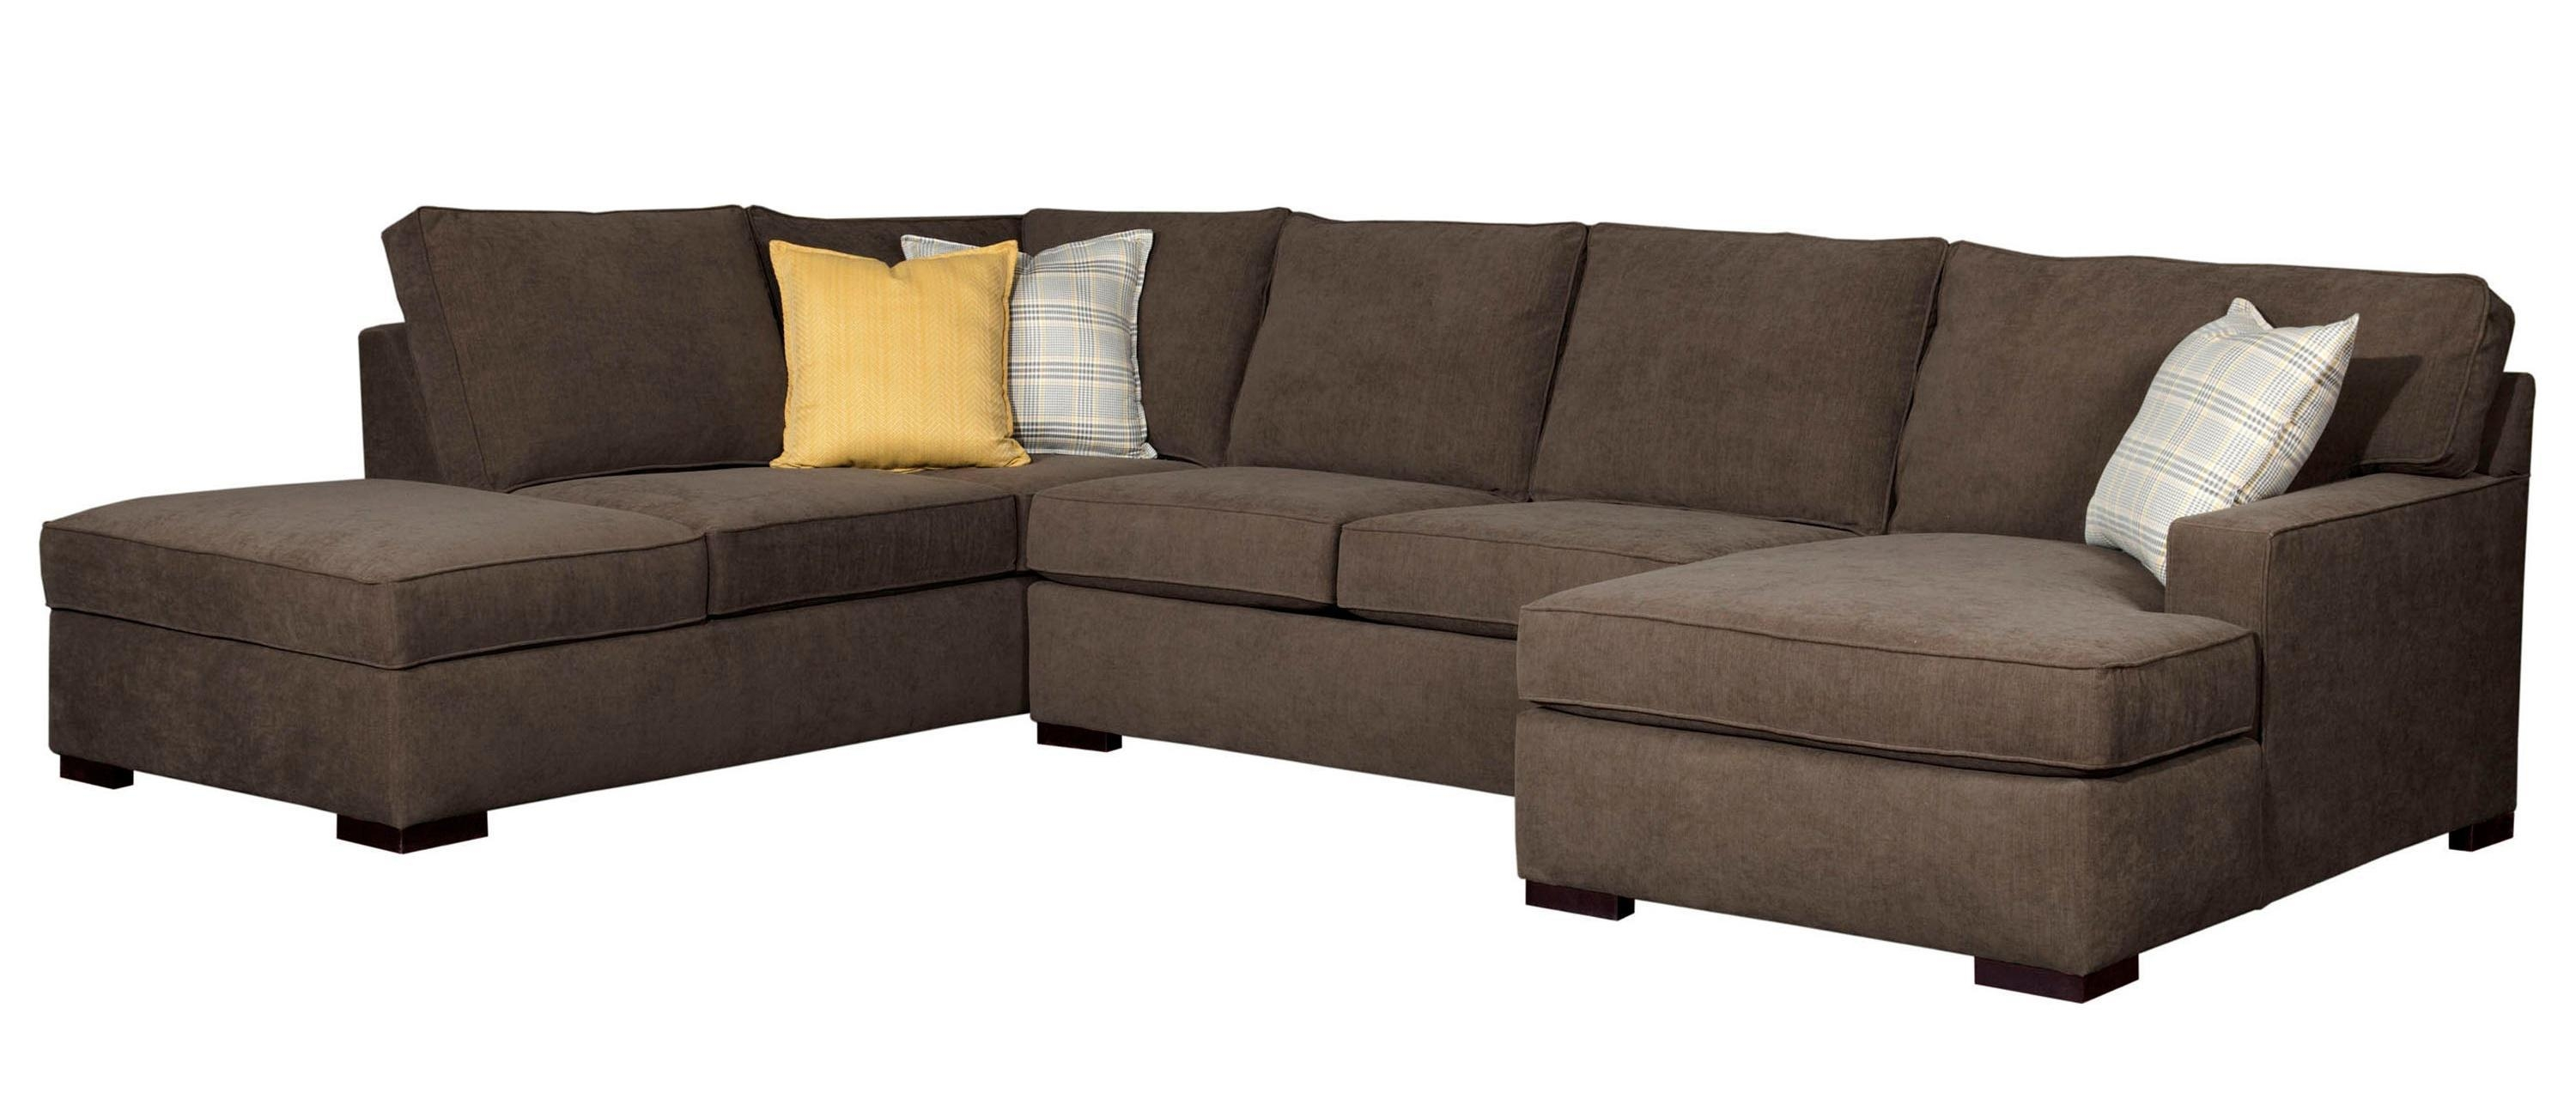 Michaels Furniture Portland – Home Design Ideas And Pictures Pertaining To Sectional Sofas Portland (Image 6 of 20)